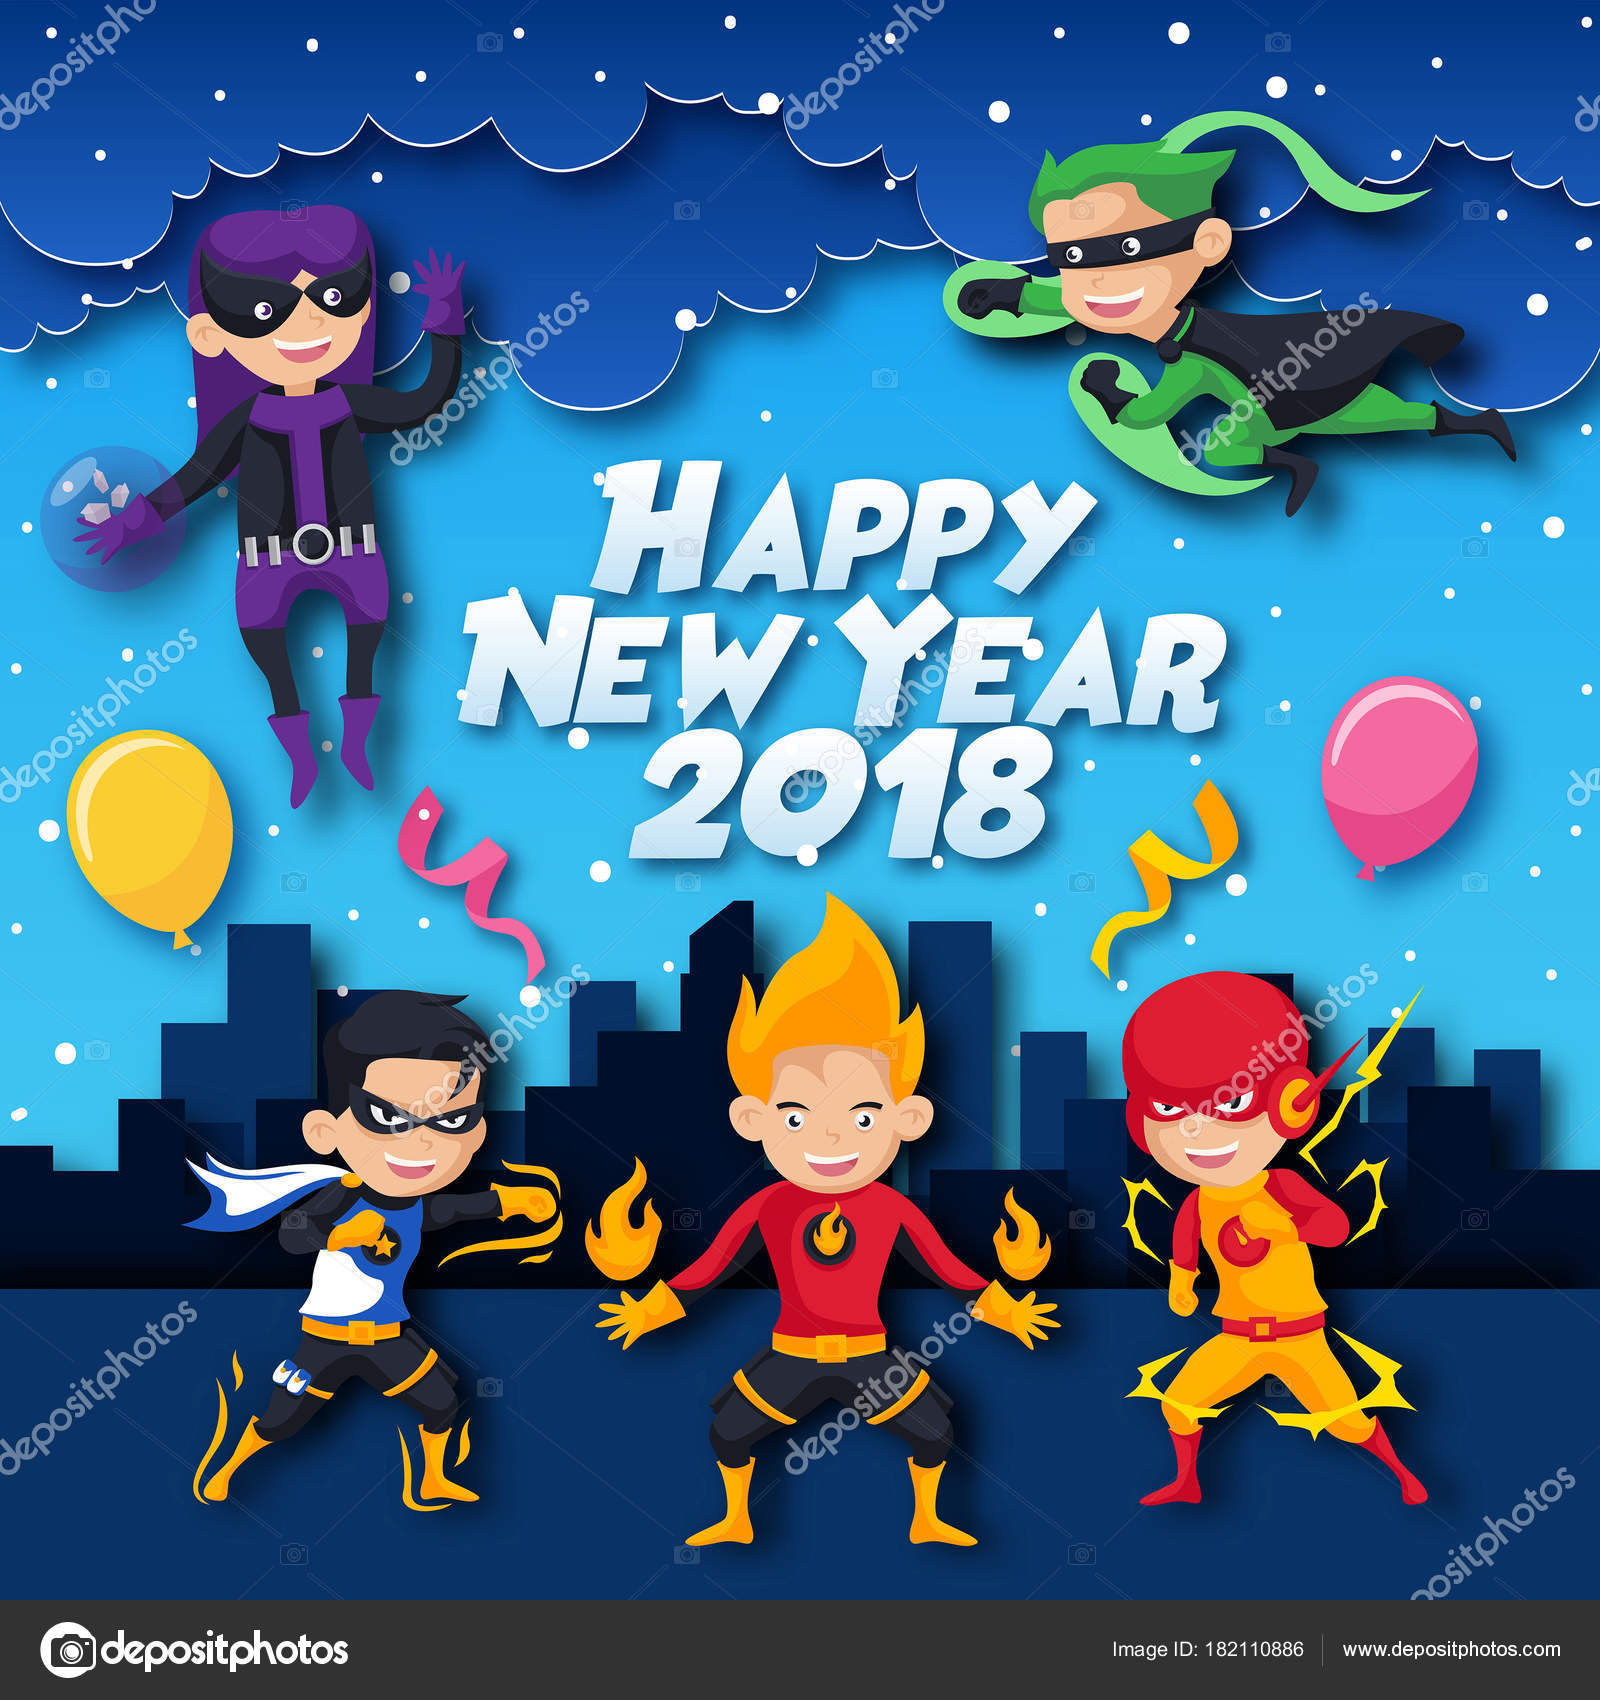 cute cheerful kids superheroes theme happy new year 2018 paper art card illustration suitable for children greeting card party invitation